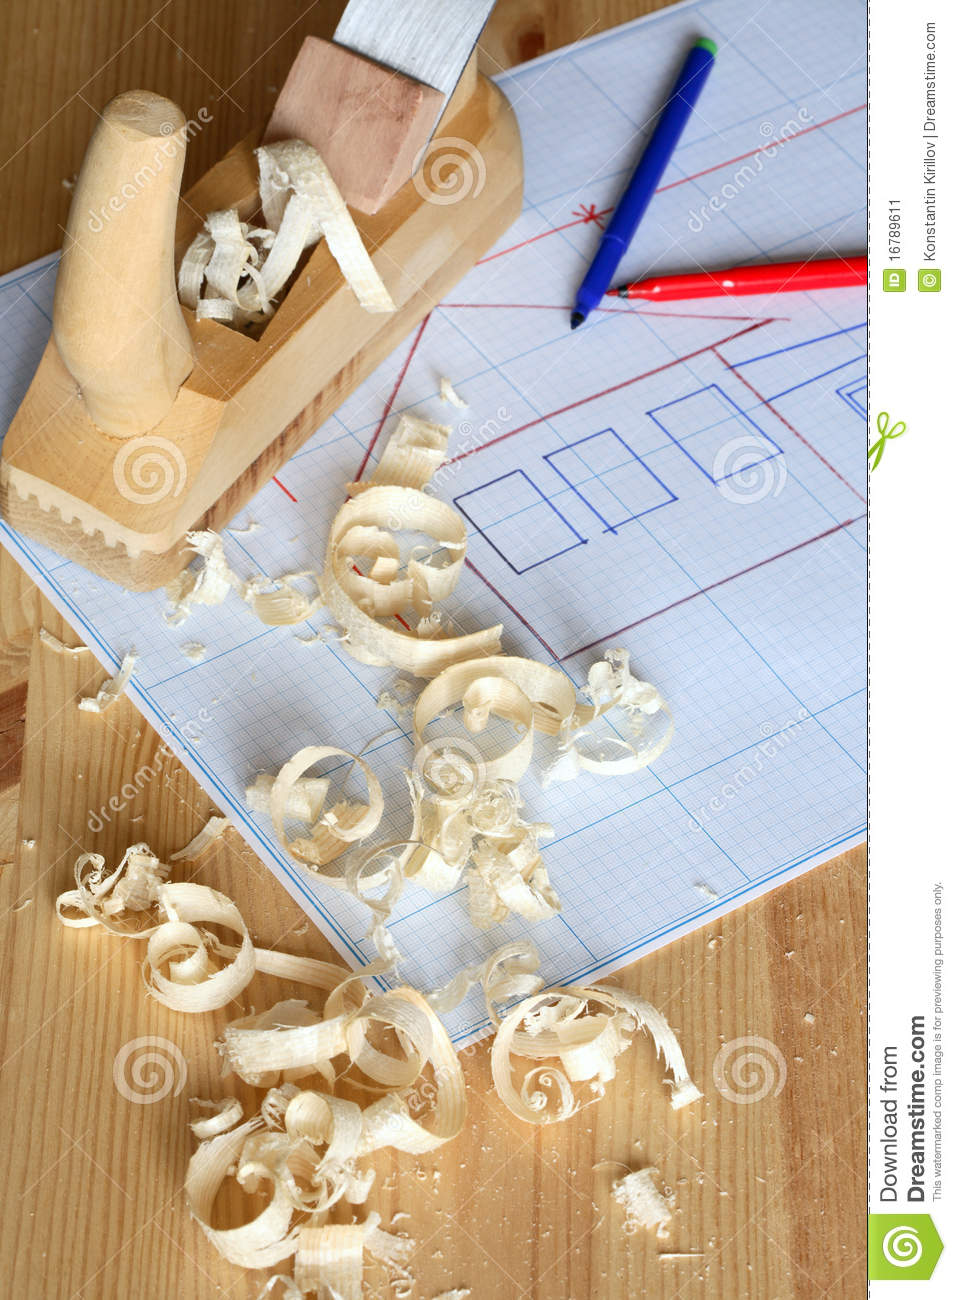 Wood Planer And Graph Paper